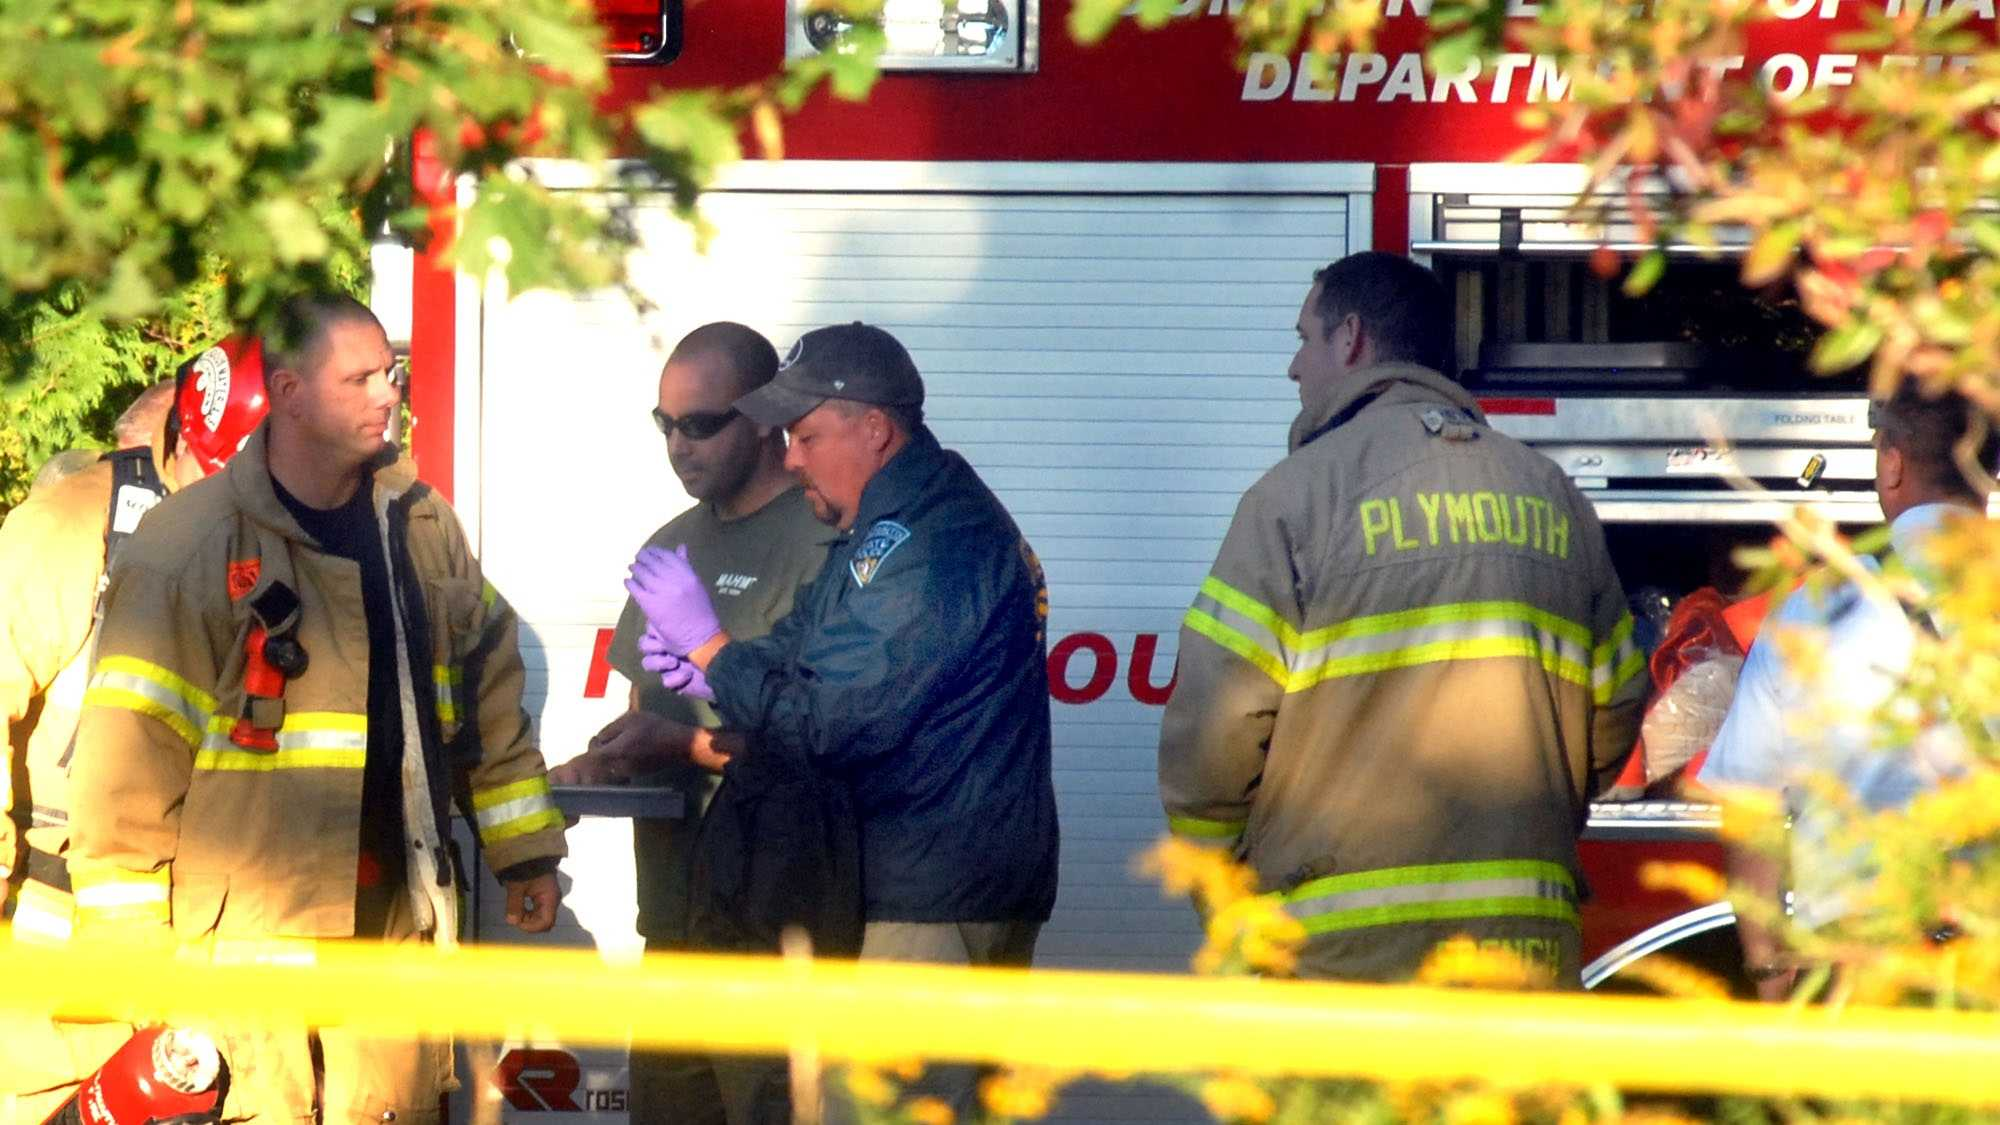 Authorities, along with a hazardous material crew, were called to a Plymouth home on Sunday to investigate a chemical found inside.